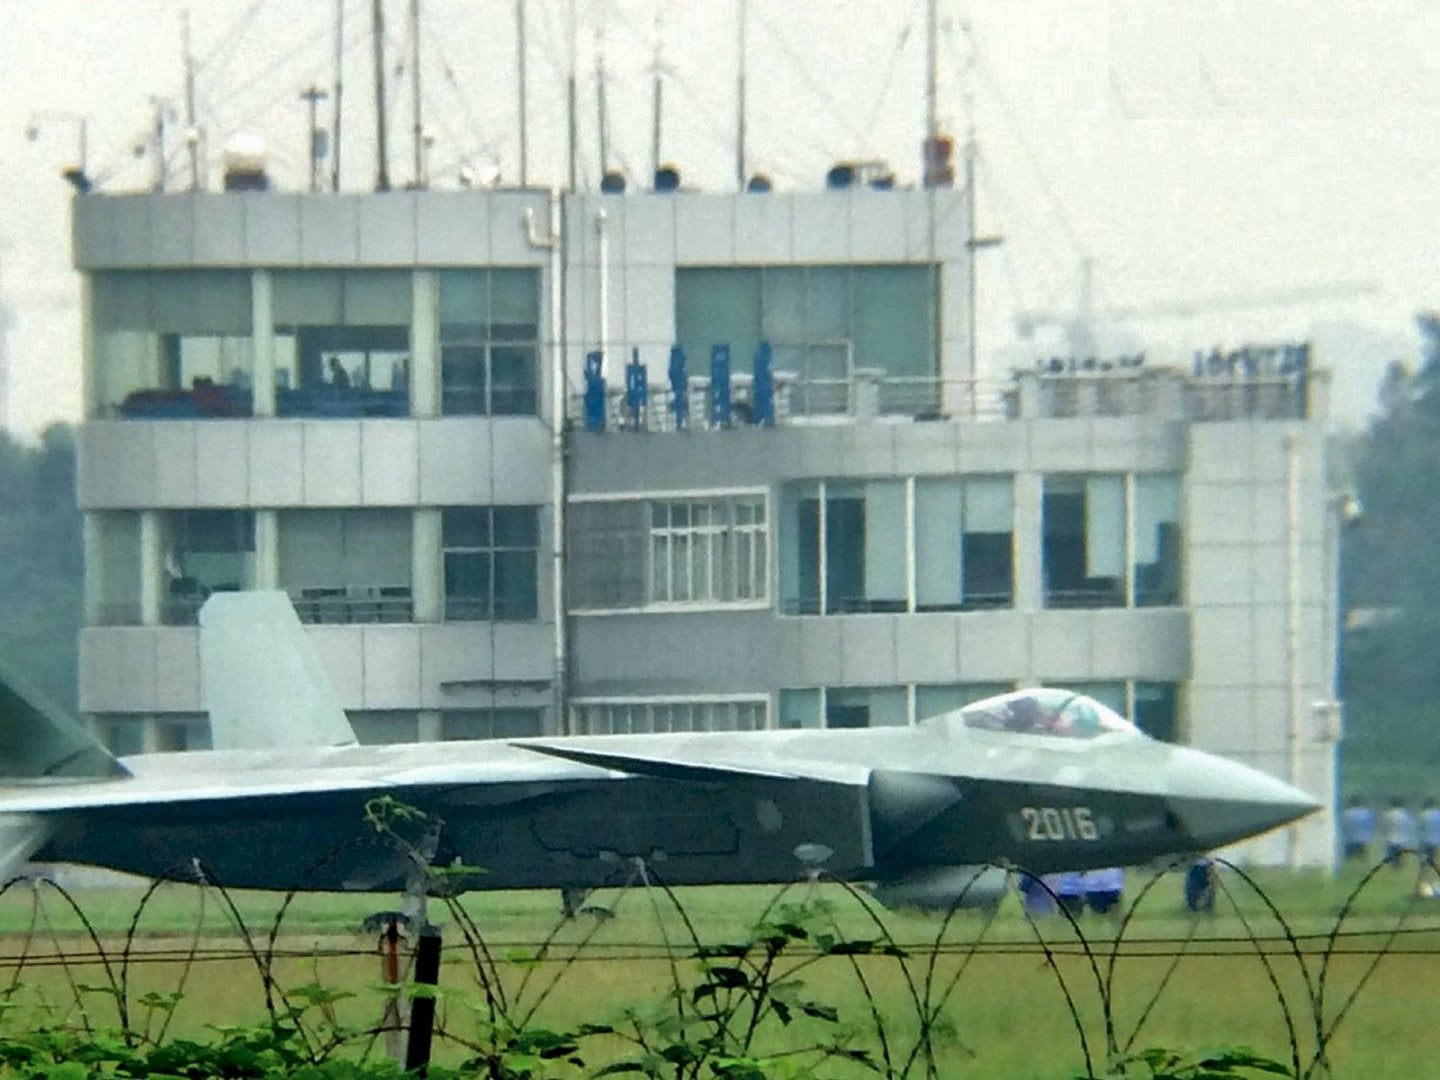 Stealthier Stealth? Seventh Upgraded Chinese Stealth Fighter Prototype Aims to take Flight